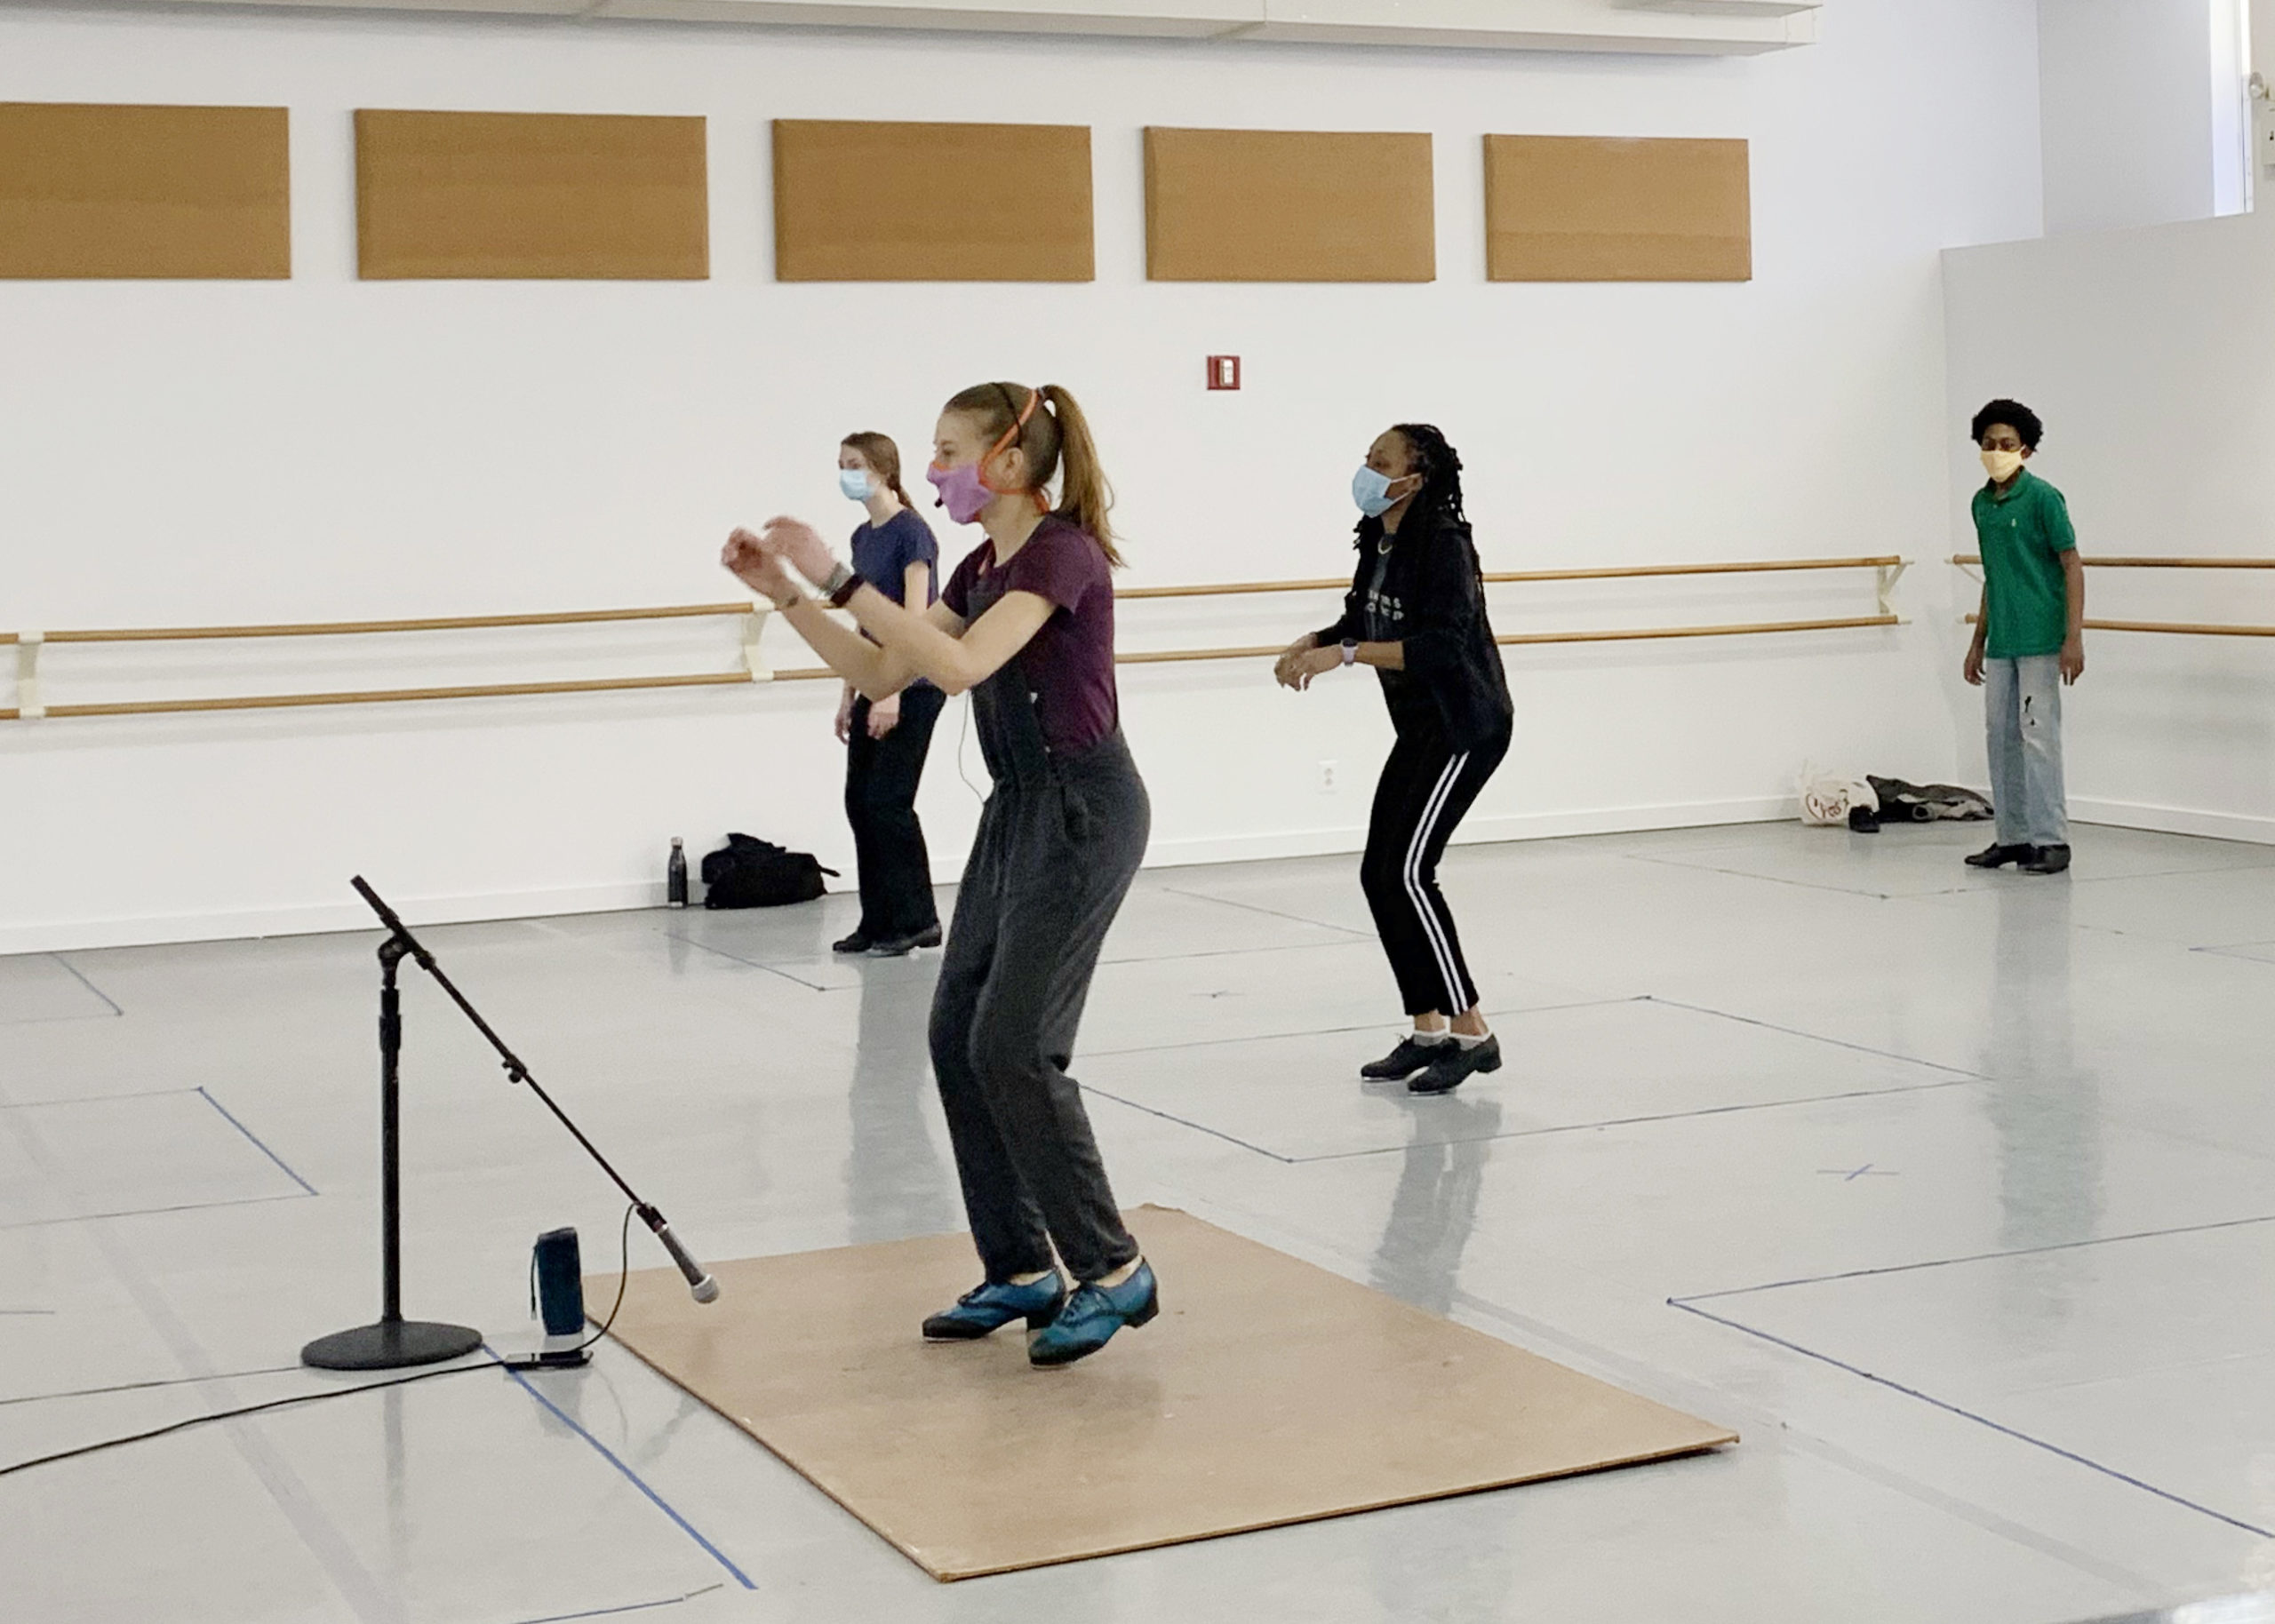 Three students of various ages take a tap class from a teacher who dancers on a tap board and has a microphone. Everyone is masked, and the students dance in boxes marked on the floor.